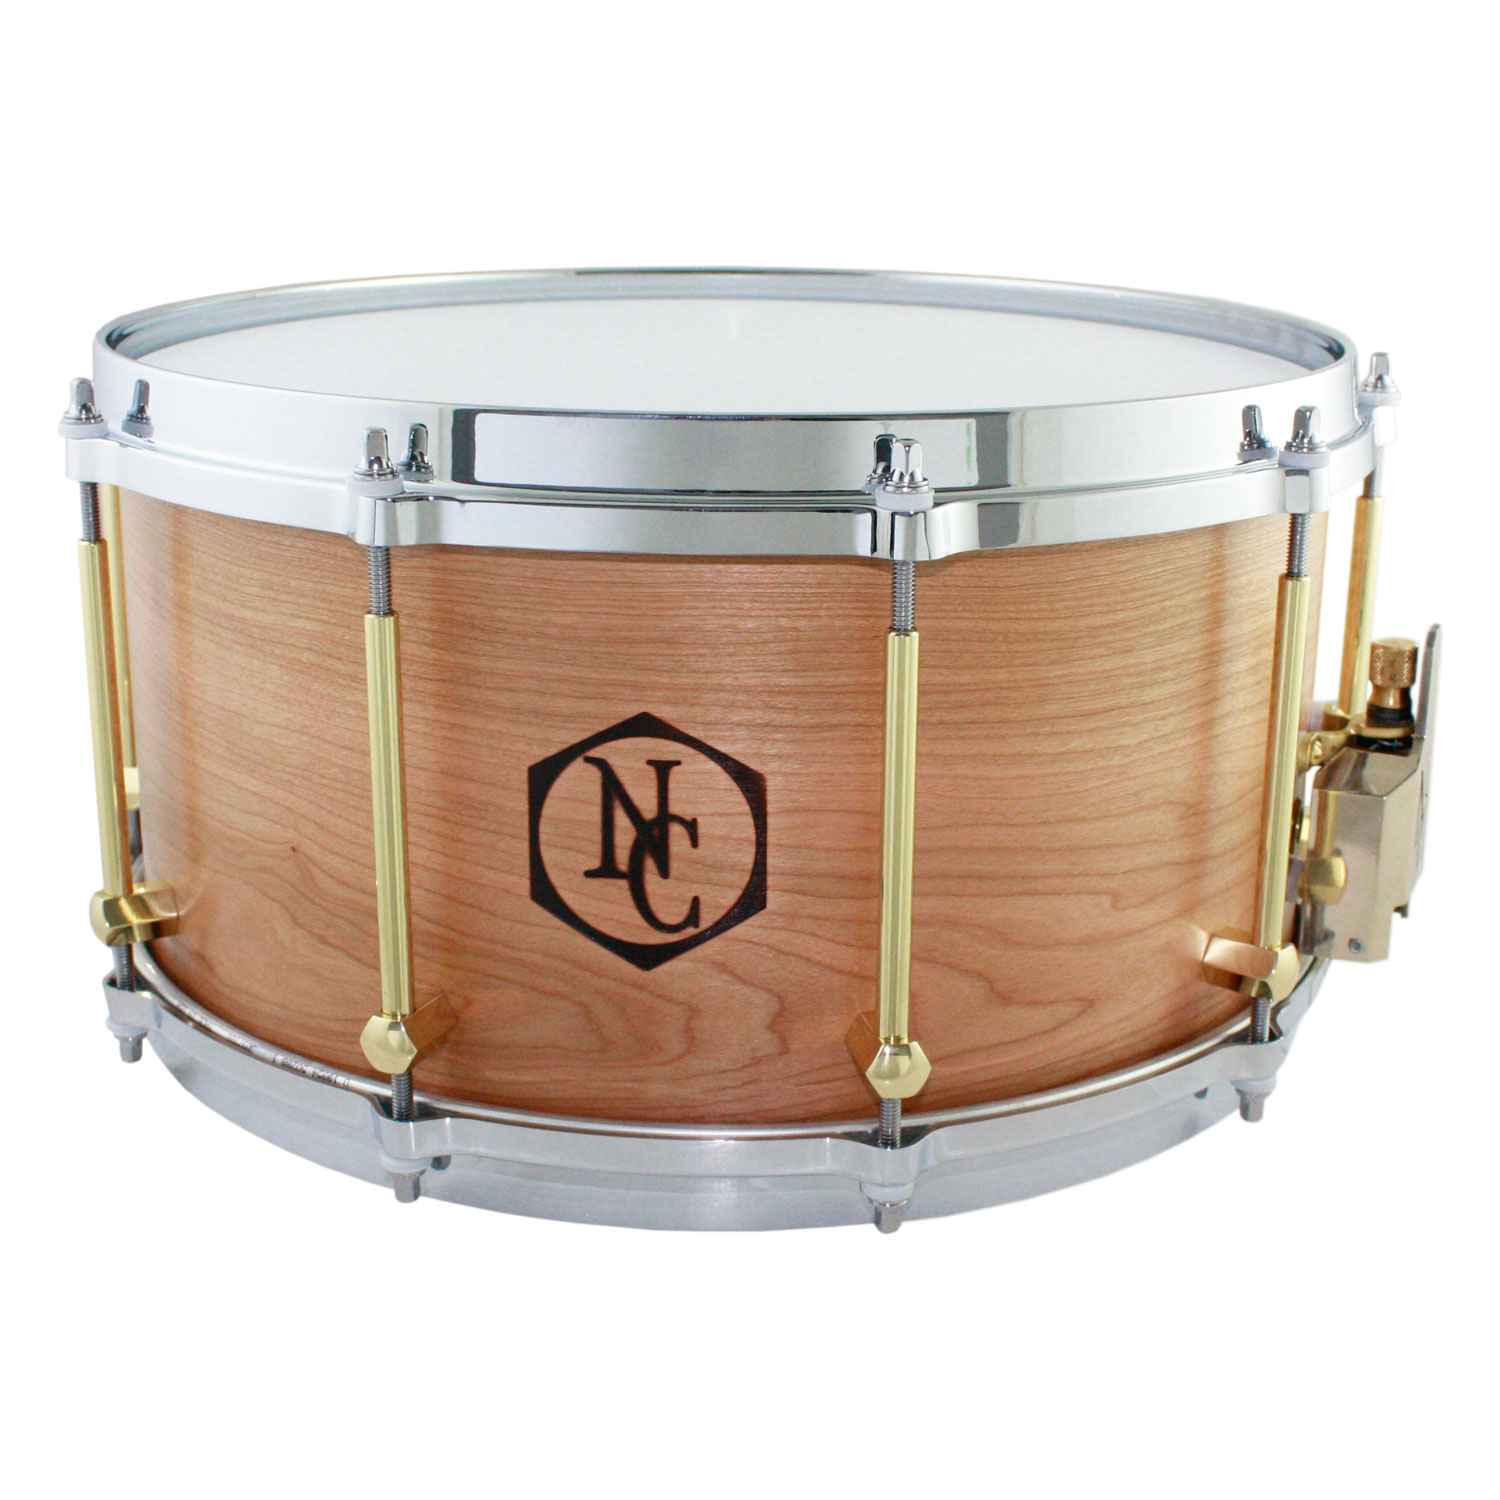 "Noble & Cooley 7"" x 14"" Classic Solid Shell Cherry Snare Drum"